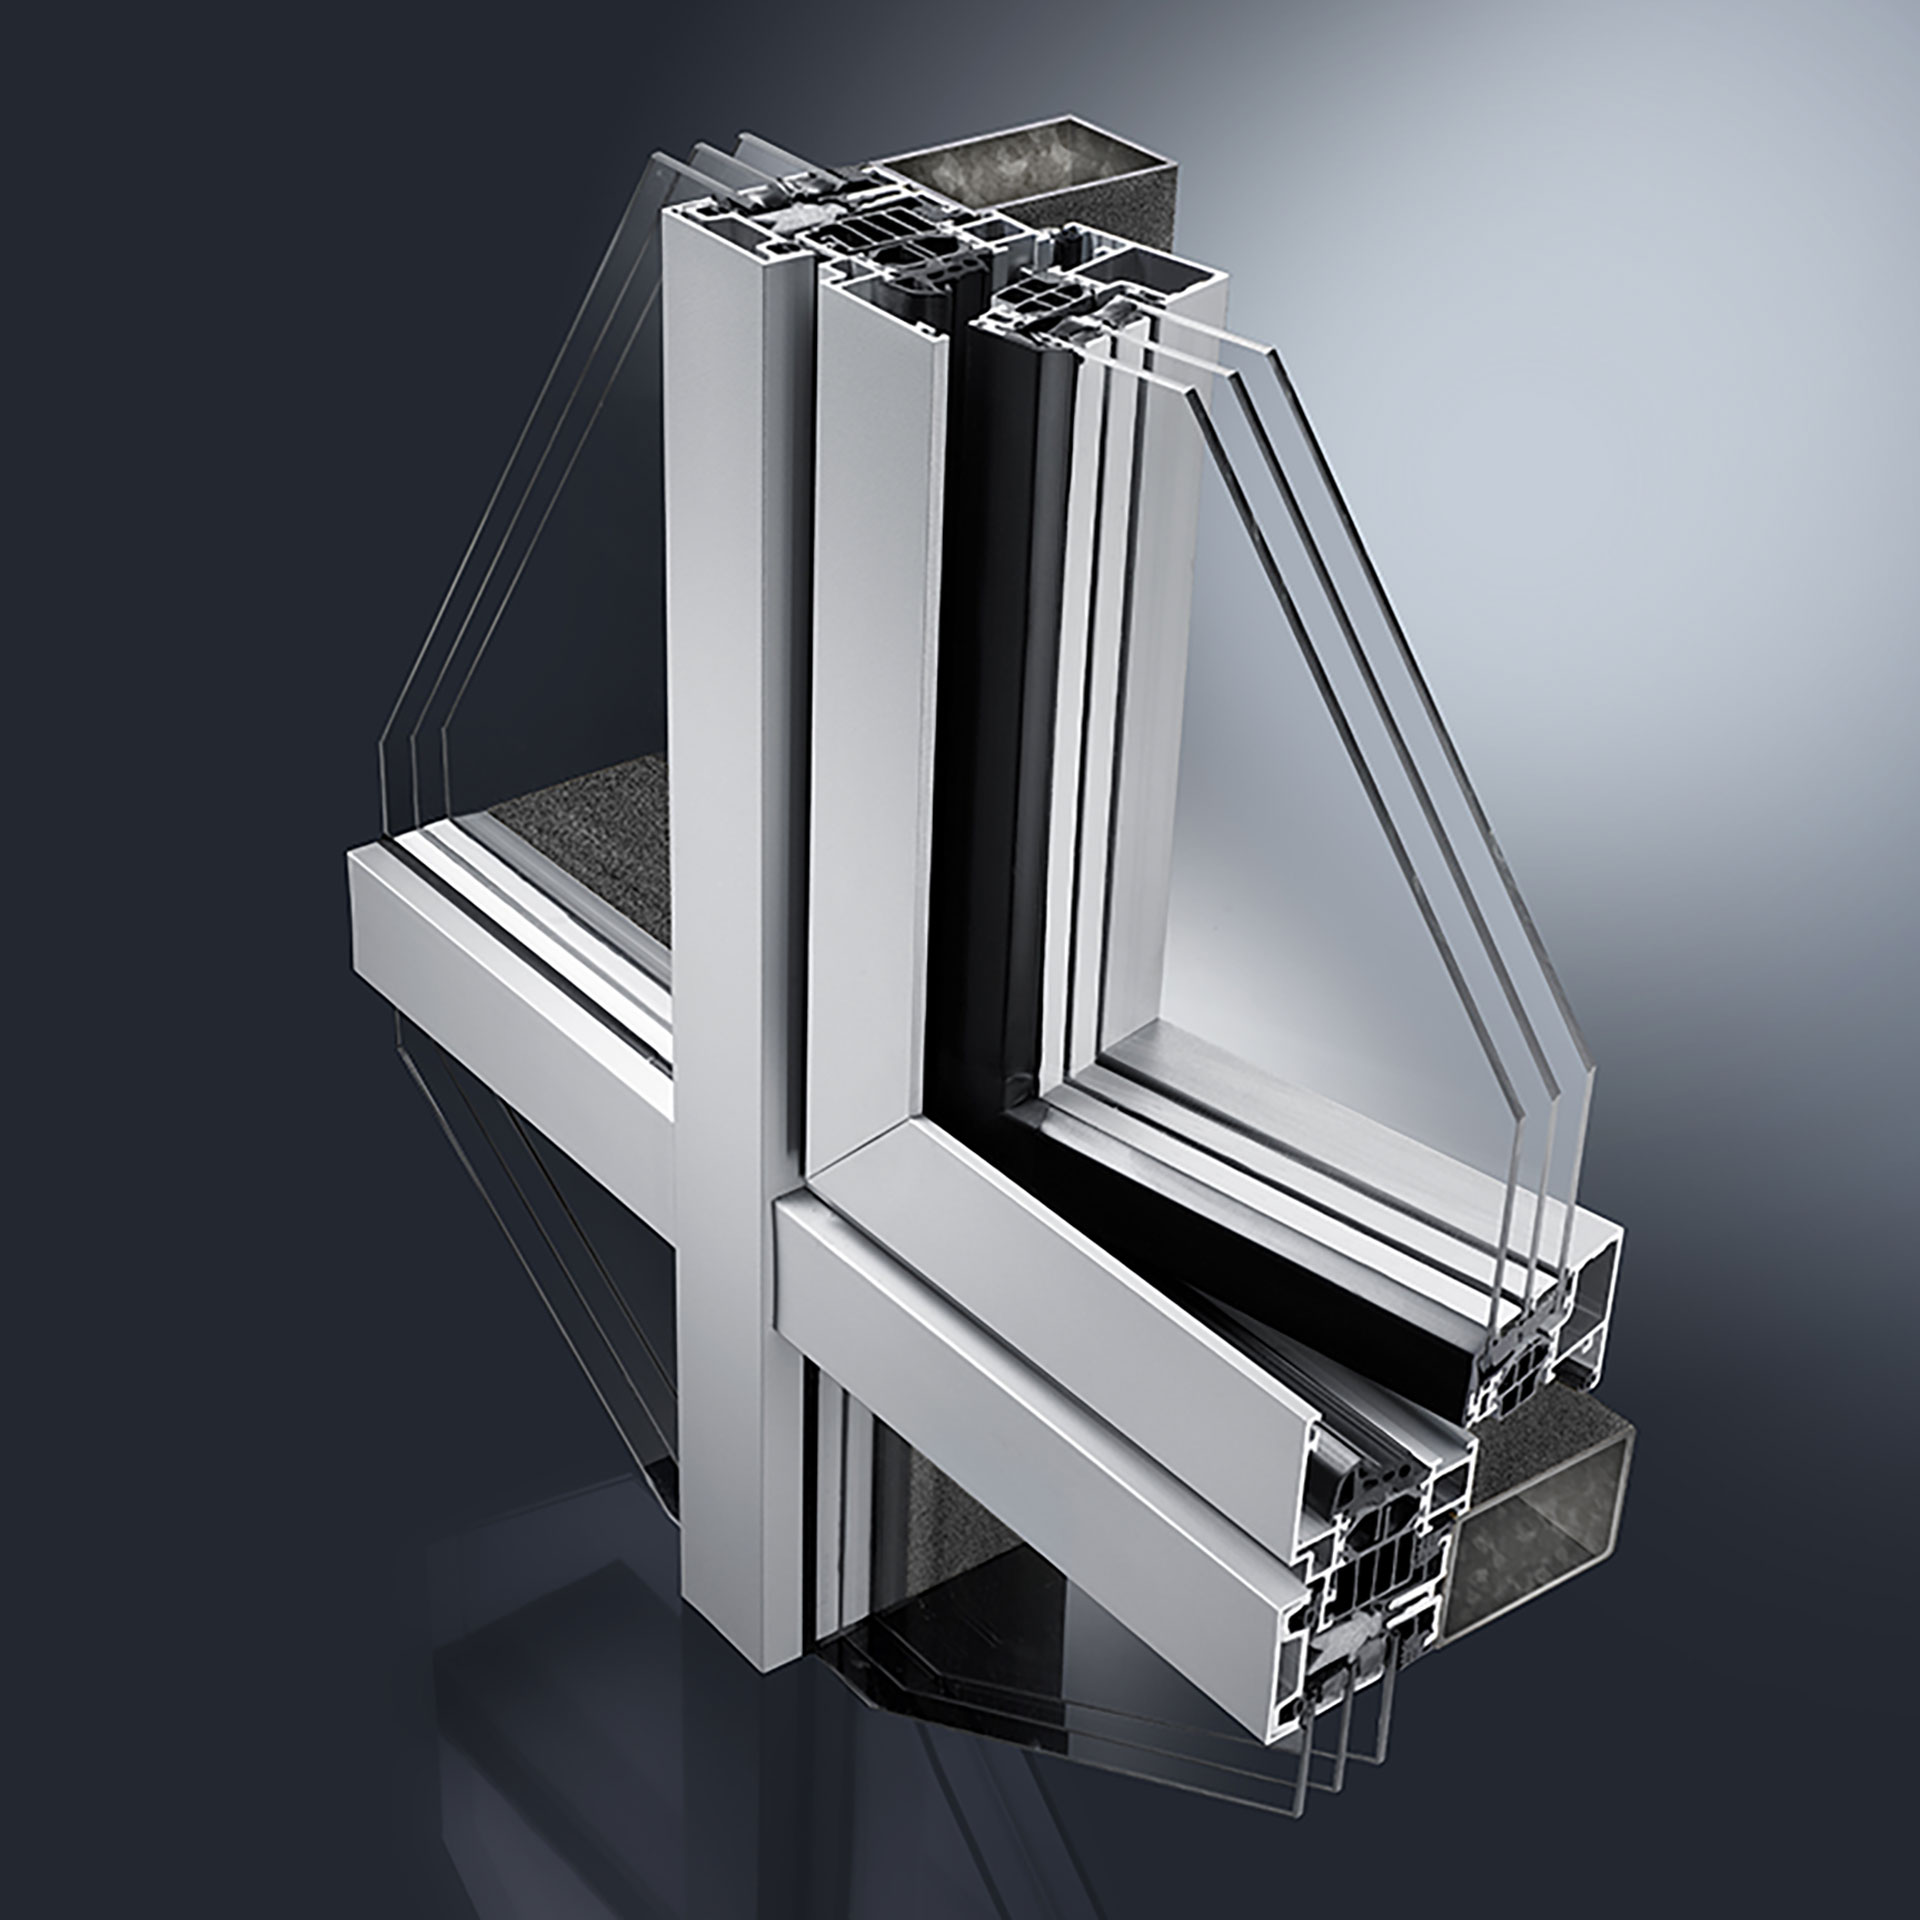 The GUTMANN F50+ / F60+ glazing systems for substructures made of steel or wood are an installation-friendly and affordable solution for curtain walls. They are perfect for elaborate glass roofs, large-scale, multi-storey & often divided facade surfaces.